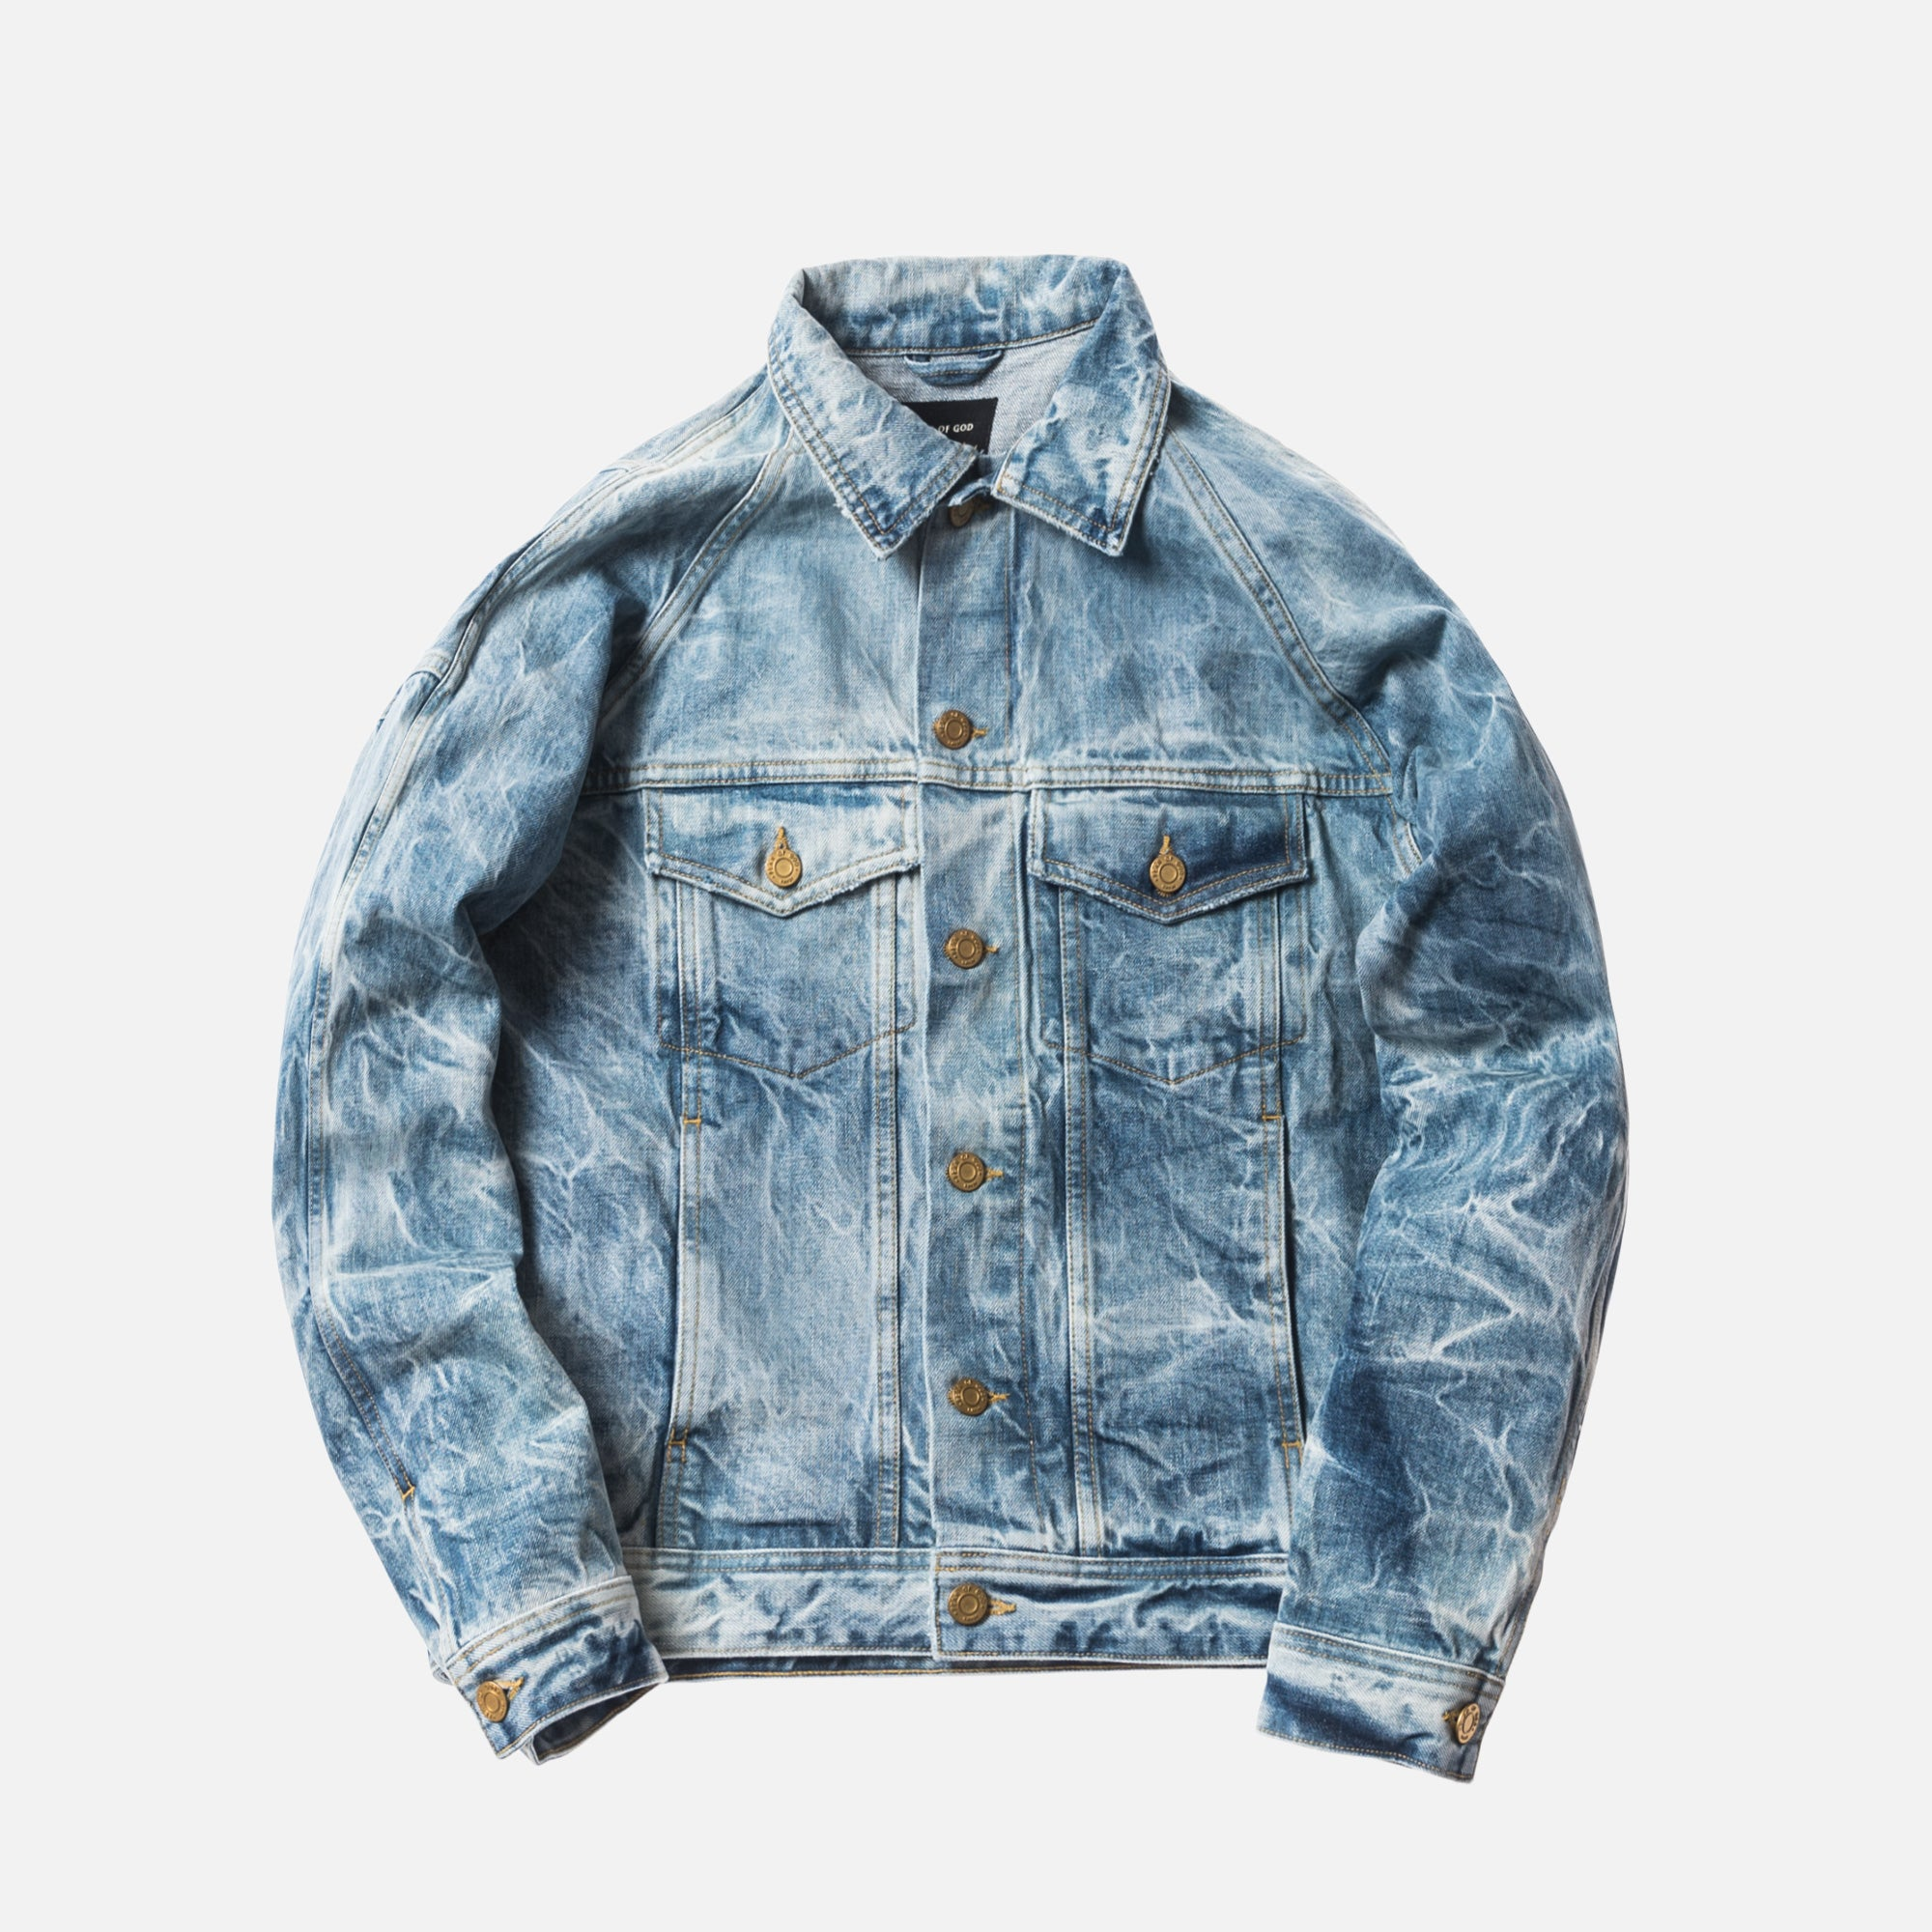 Fear of God 5th Collection Selvedge Denim Holy Water Trucker Jacket - Light Blue